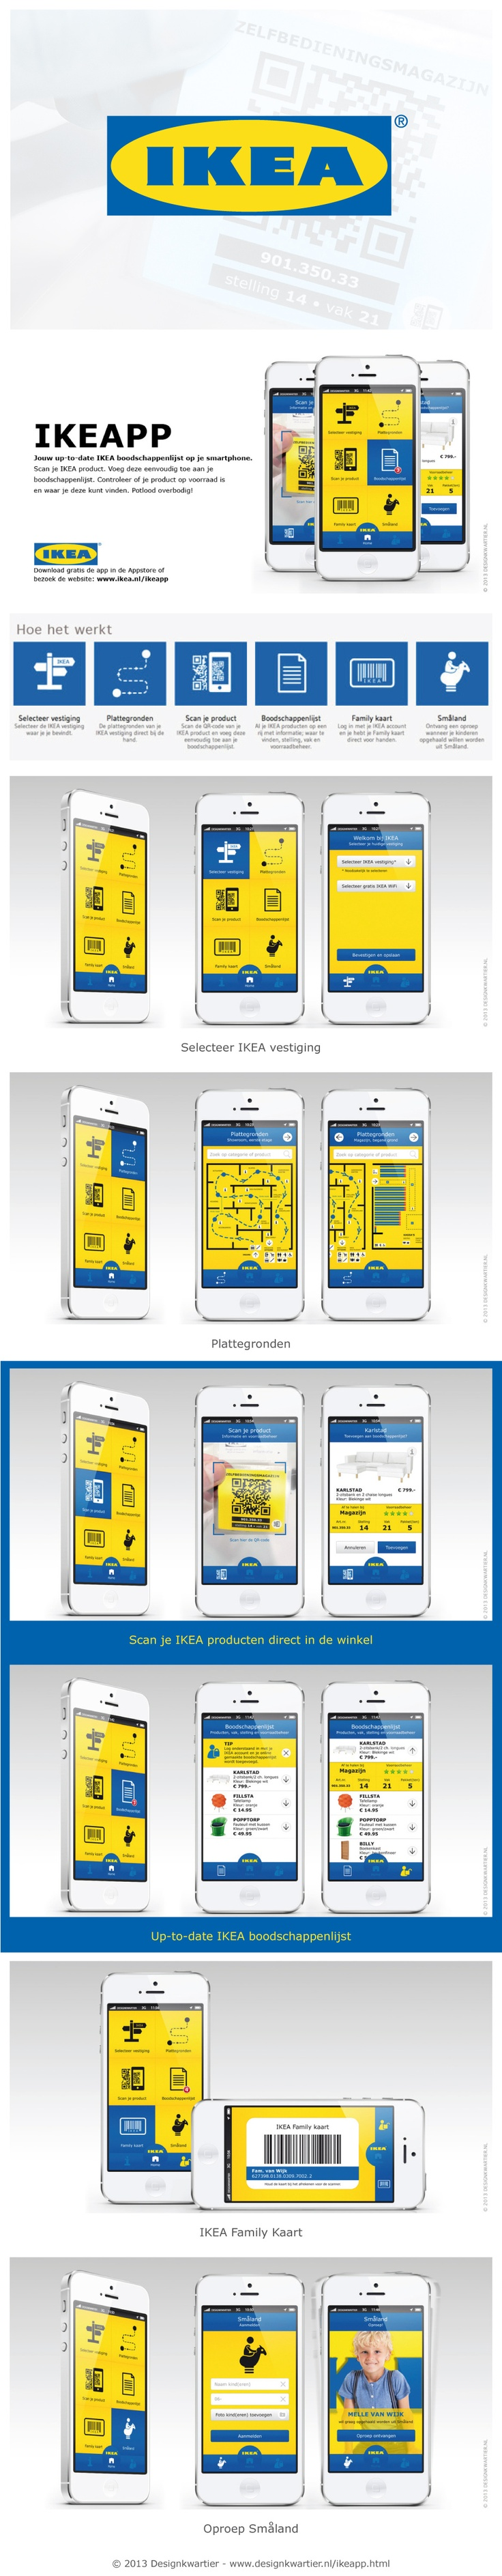 IKEAPP - IKEA Shopping List App Redesign